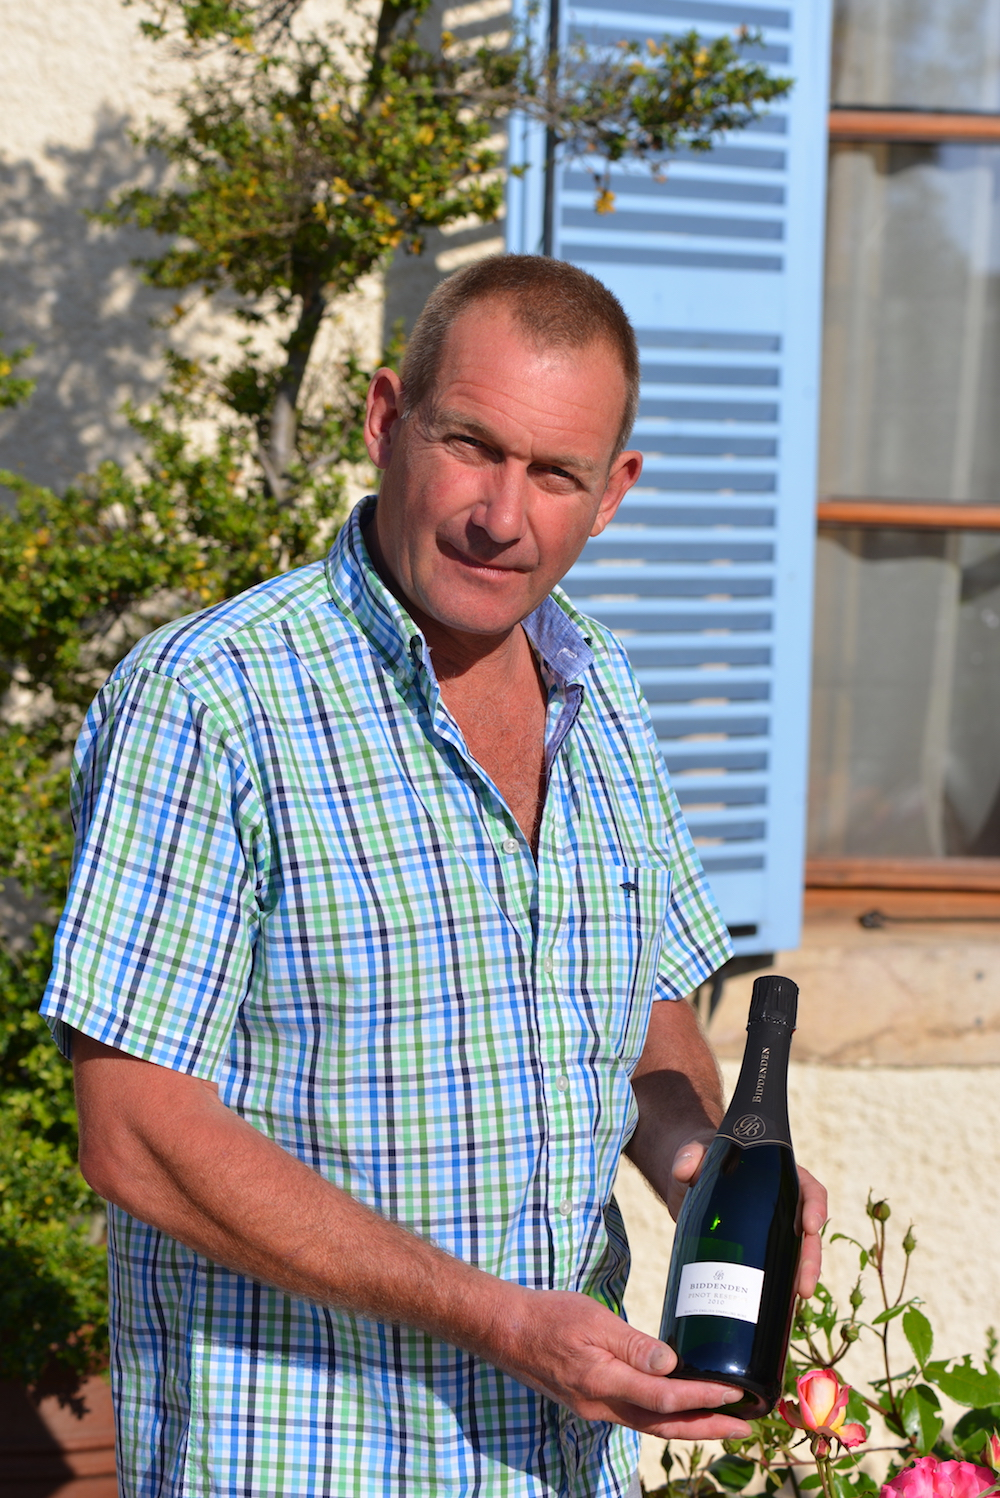 Julian Barnes with his sparkling cuvee 'Biddenden Pinot Reserve' 2010